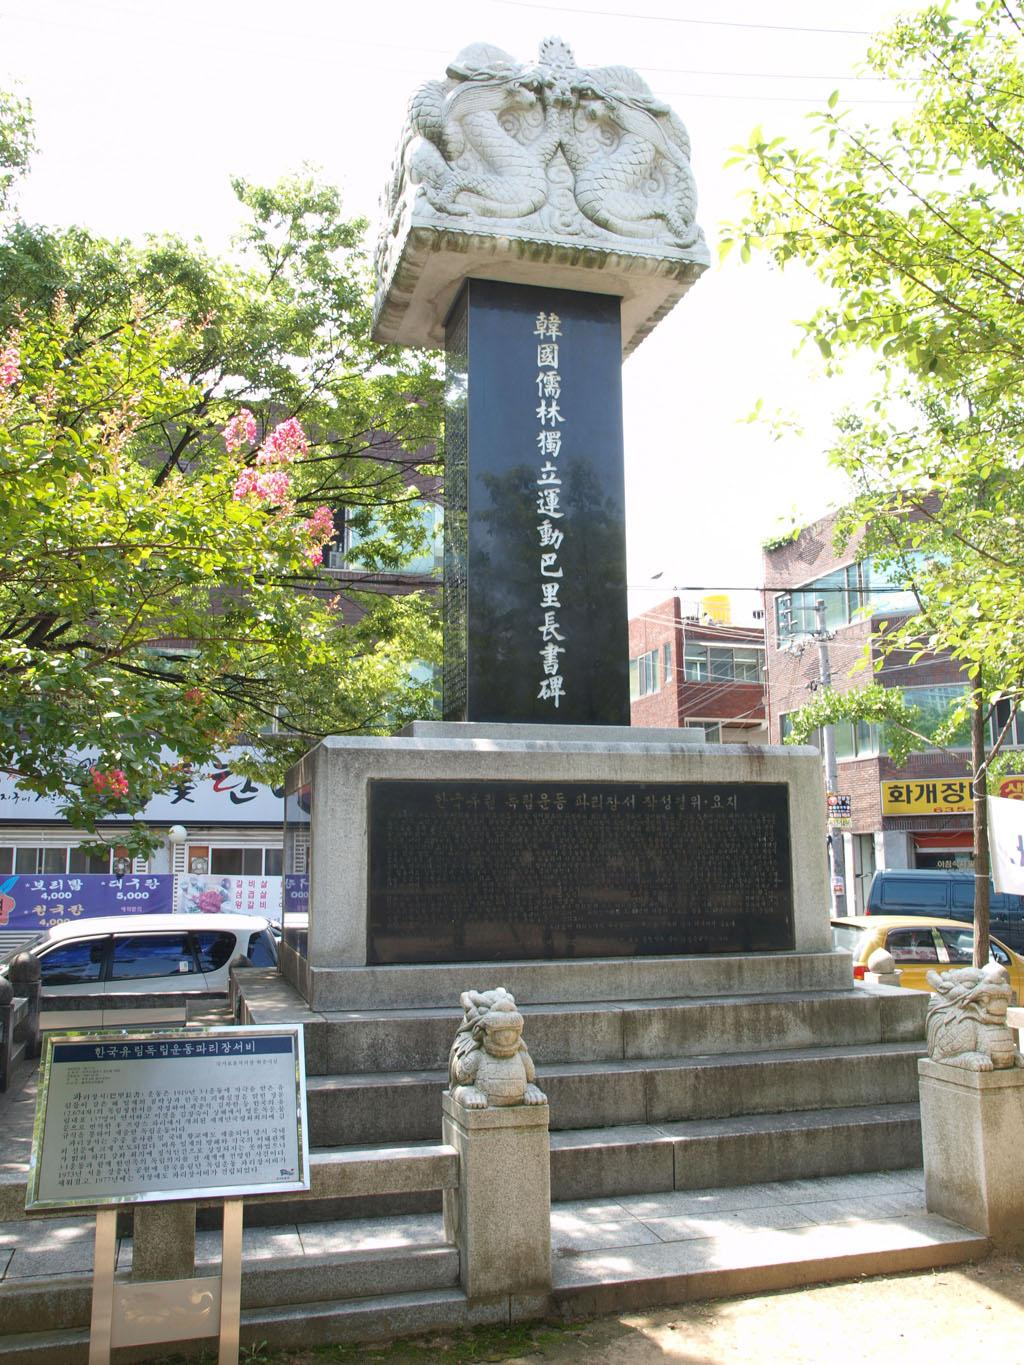 Balichangshu Stele of Rulin Independence Movement